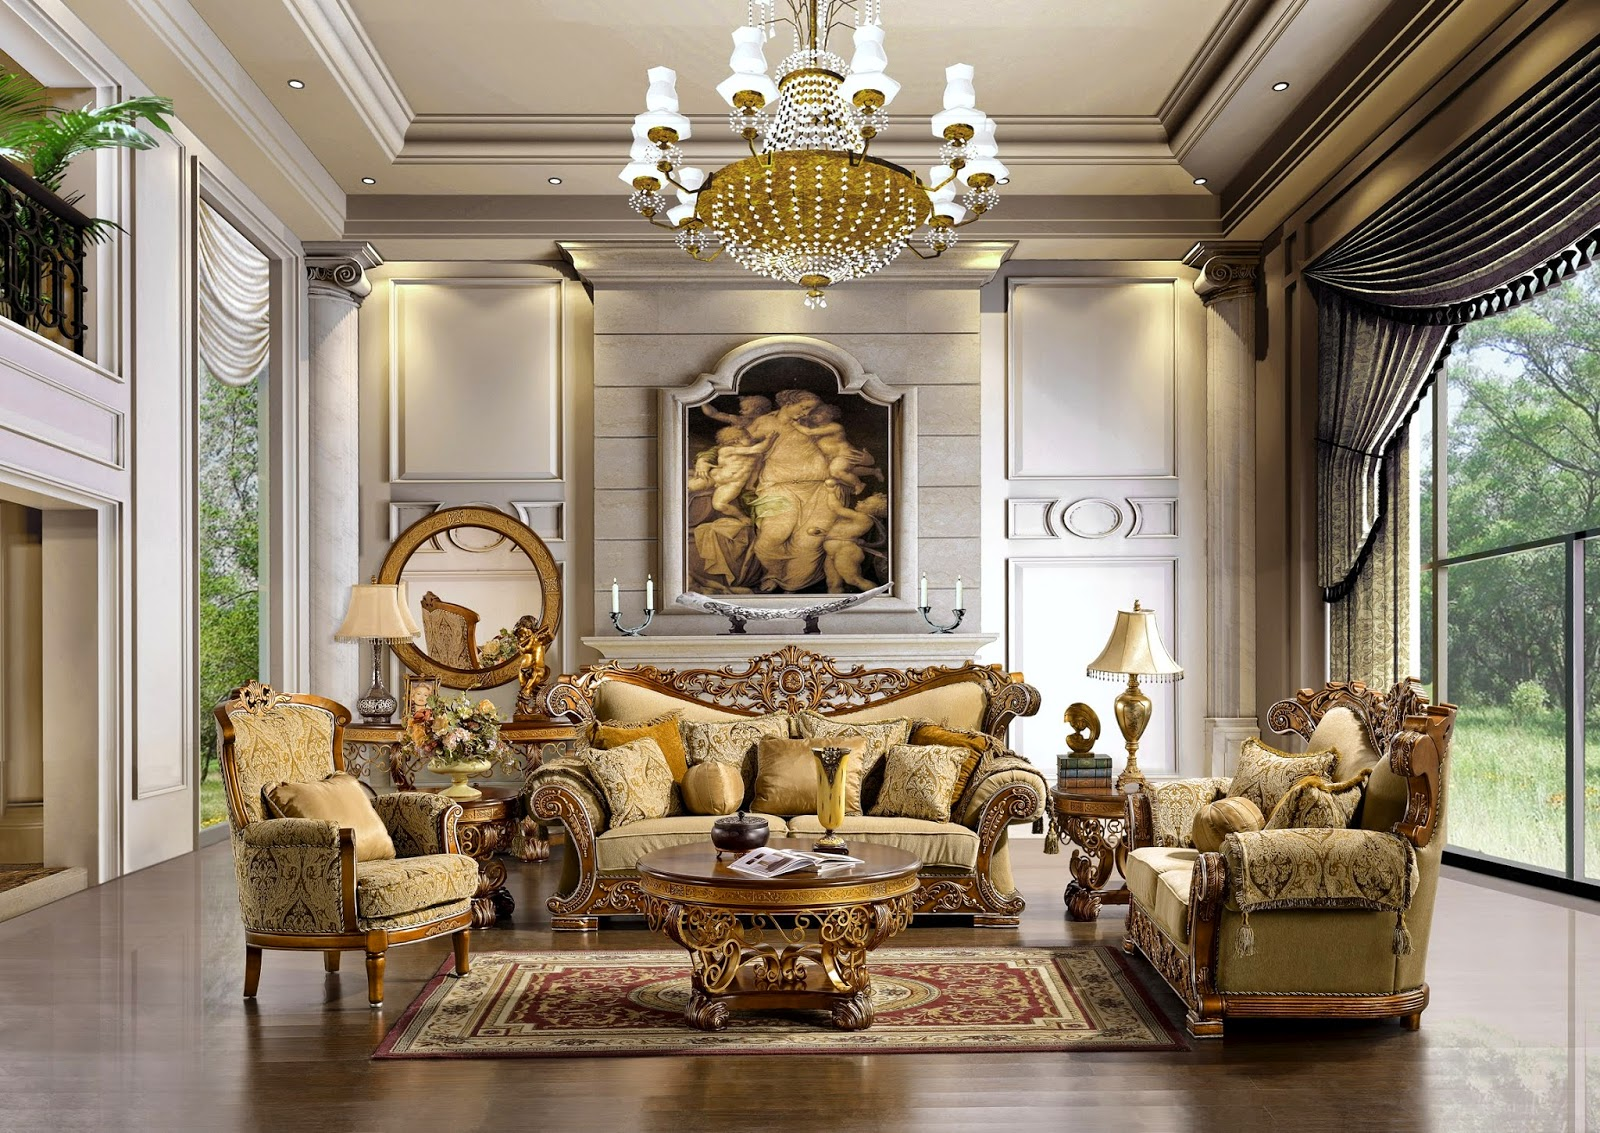 15 traditional living room ideas  home design hd wallpapers